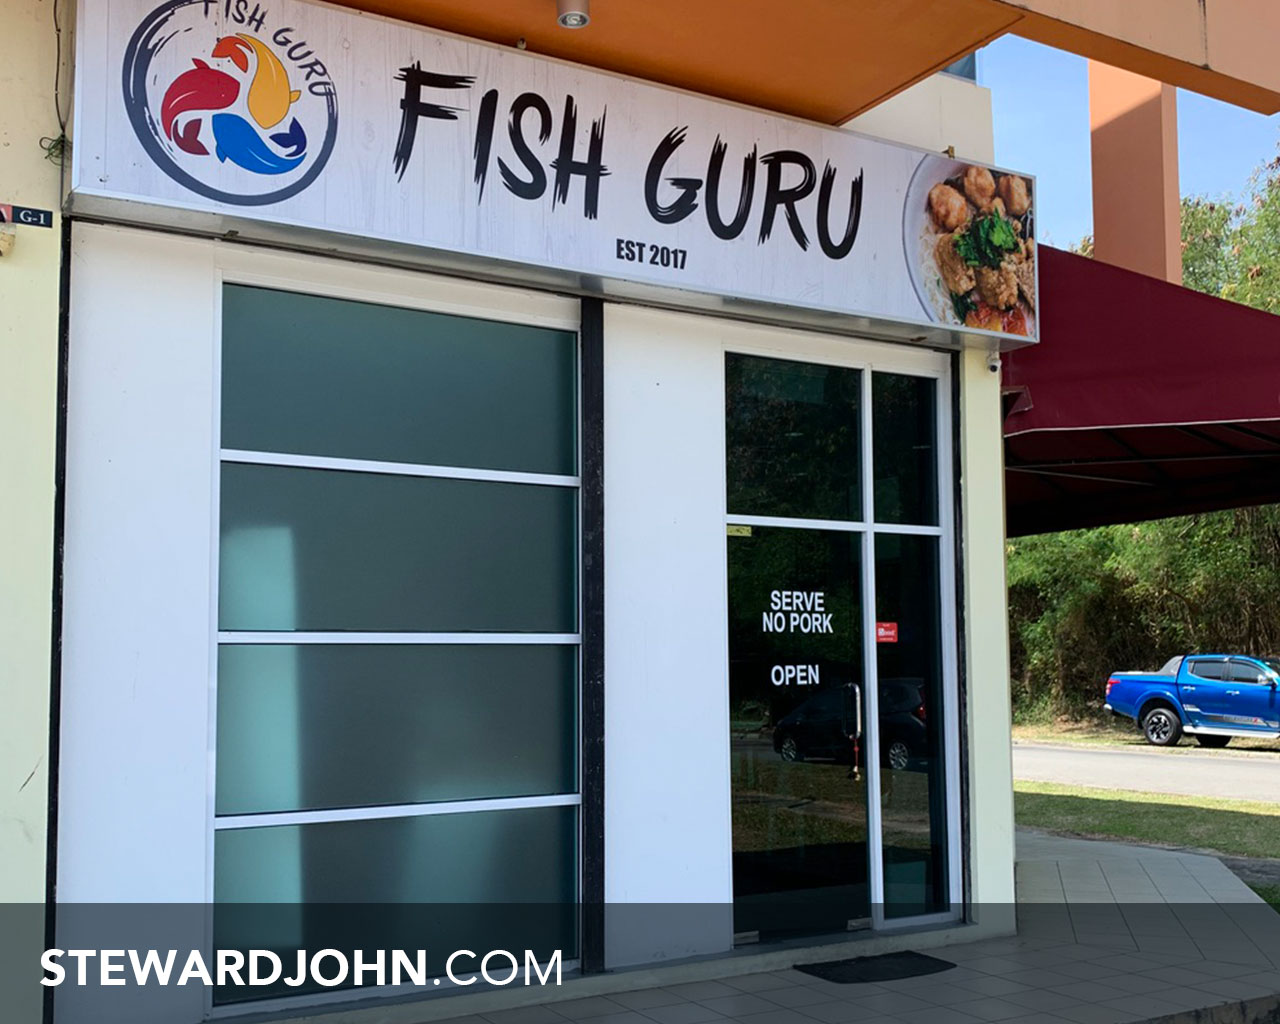 Fish Guru restaurant serve no pork and halal friendly